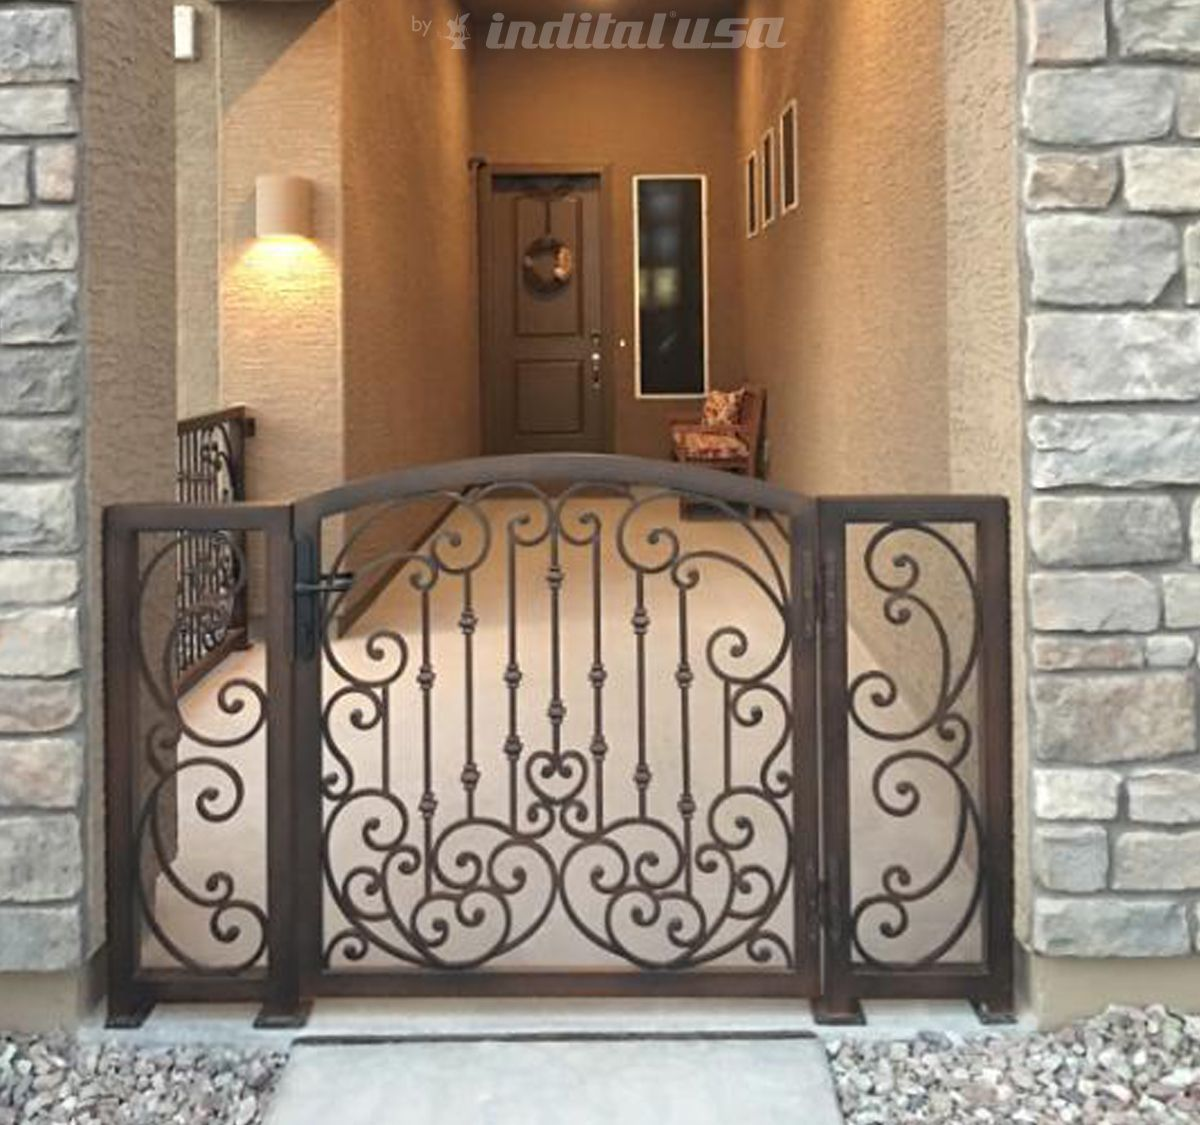 rod black porch wrought breathtaking chandeliers iron stairs step extraordinary with railings railing